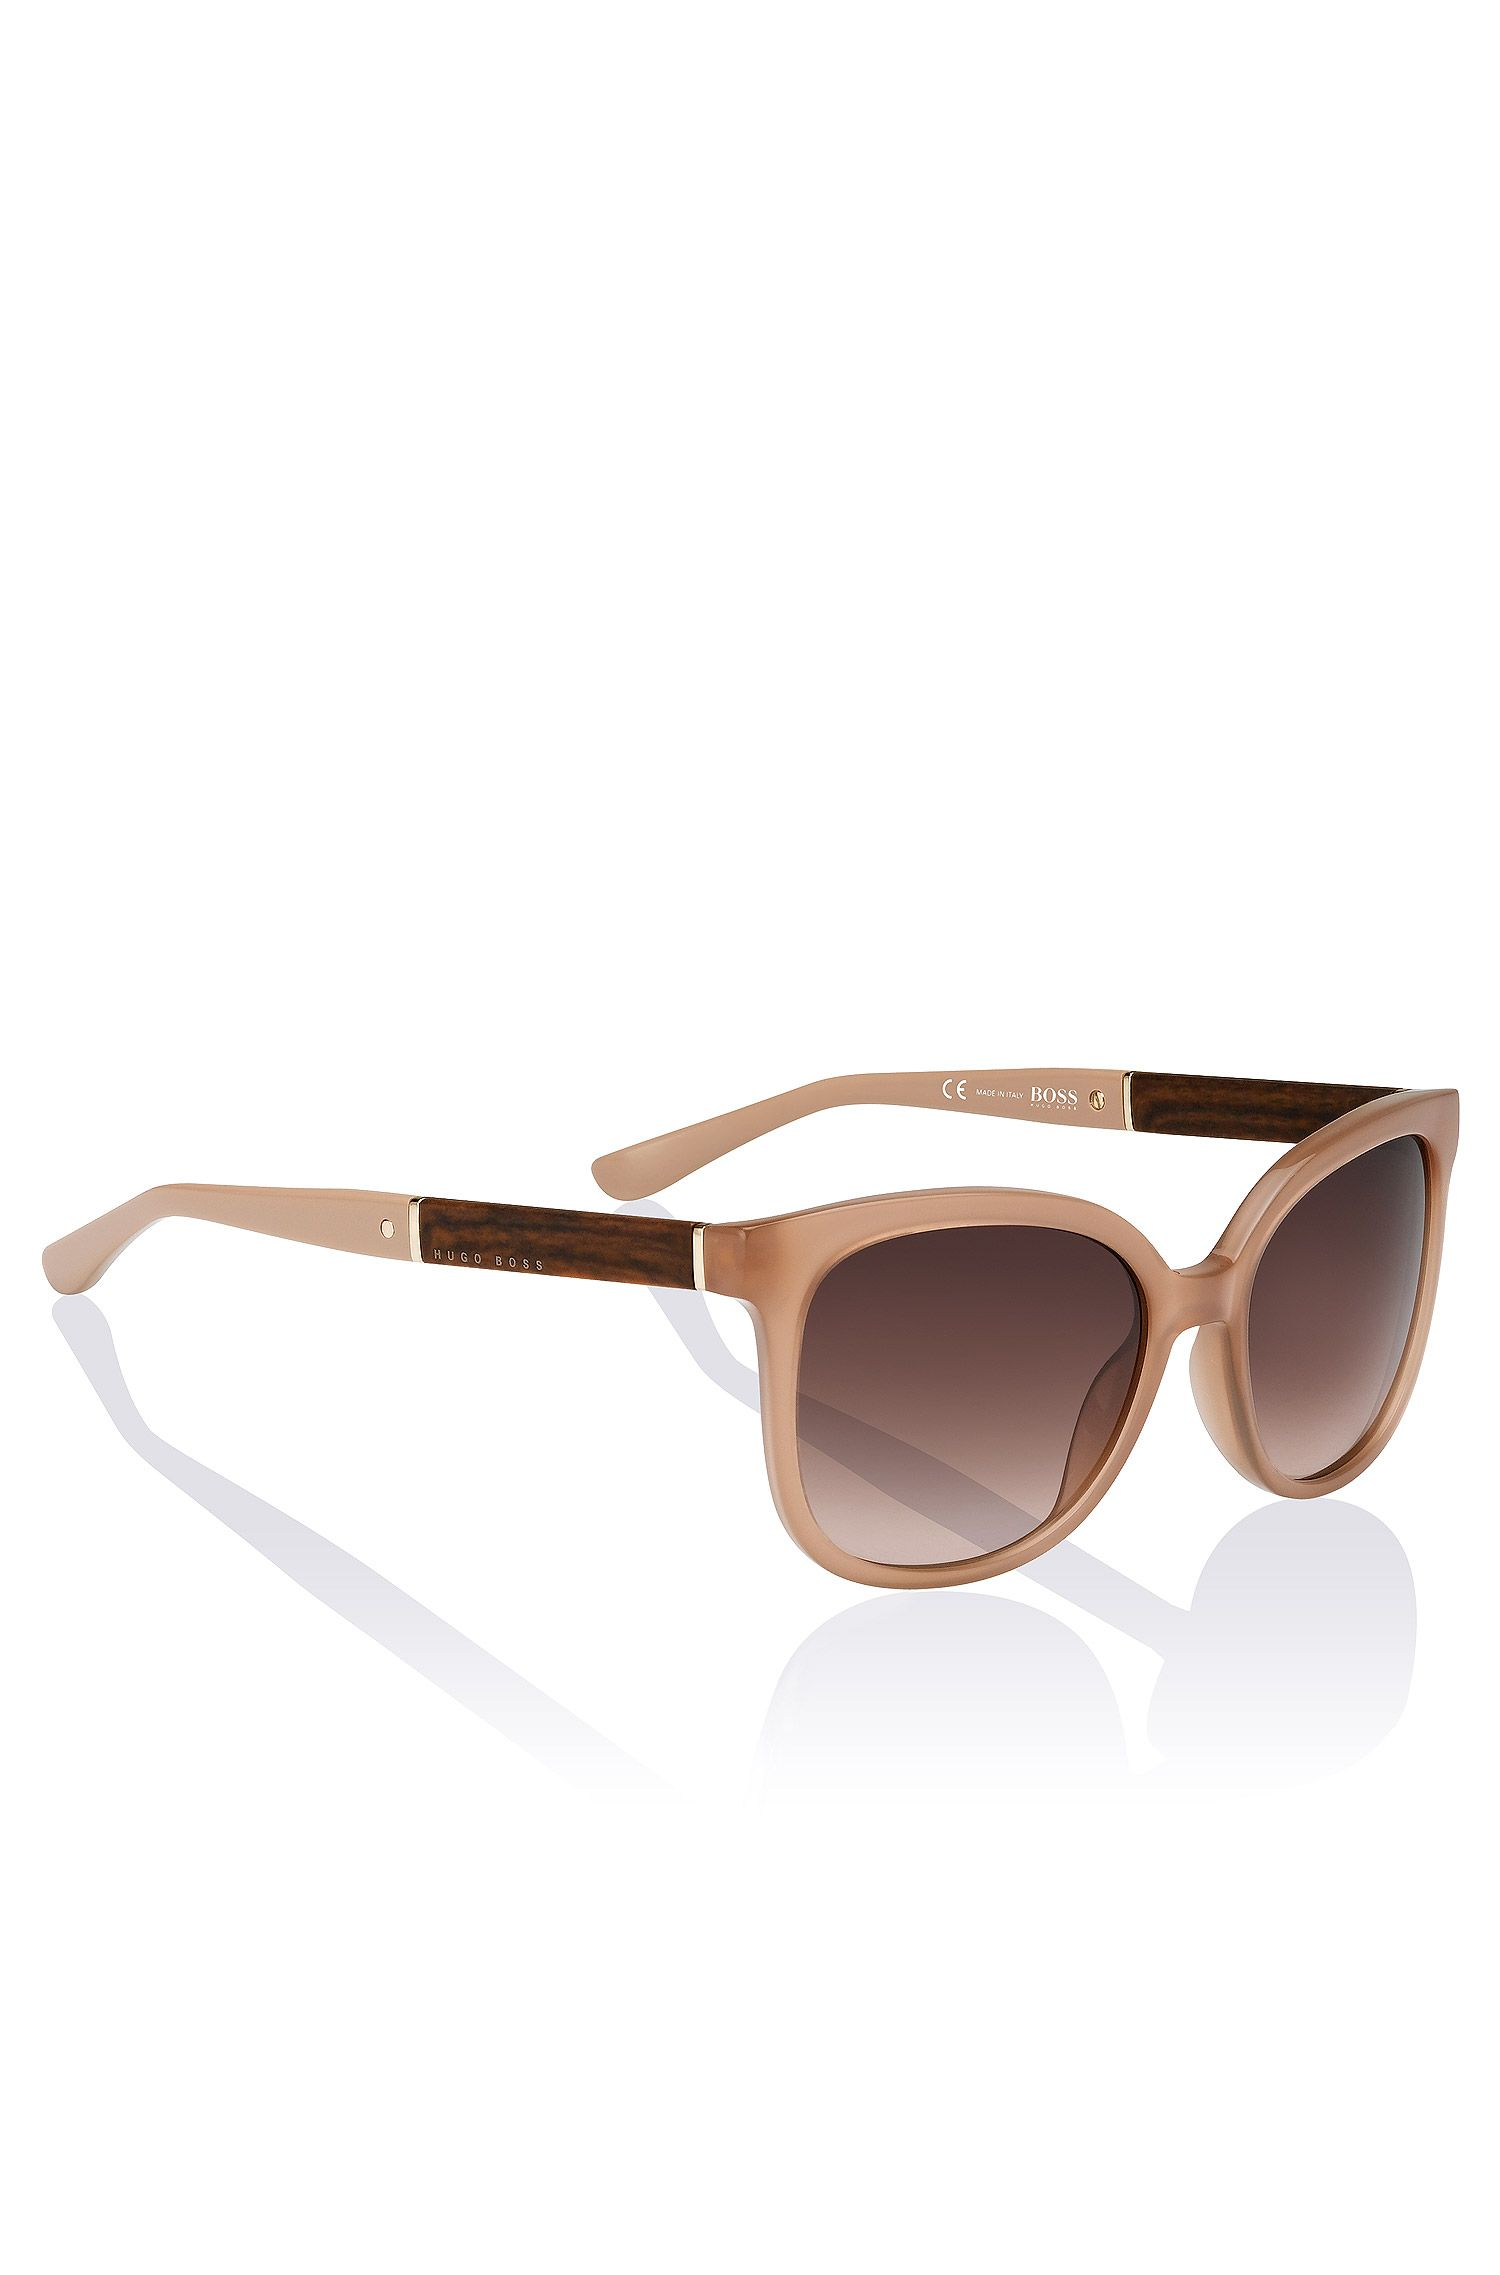 Gafas de sol 'BOSS 0663/S' de acetato